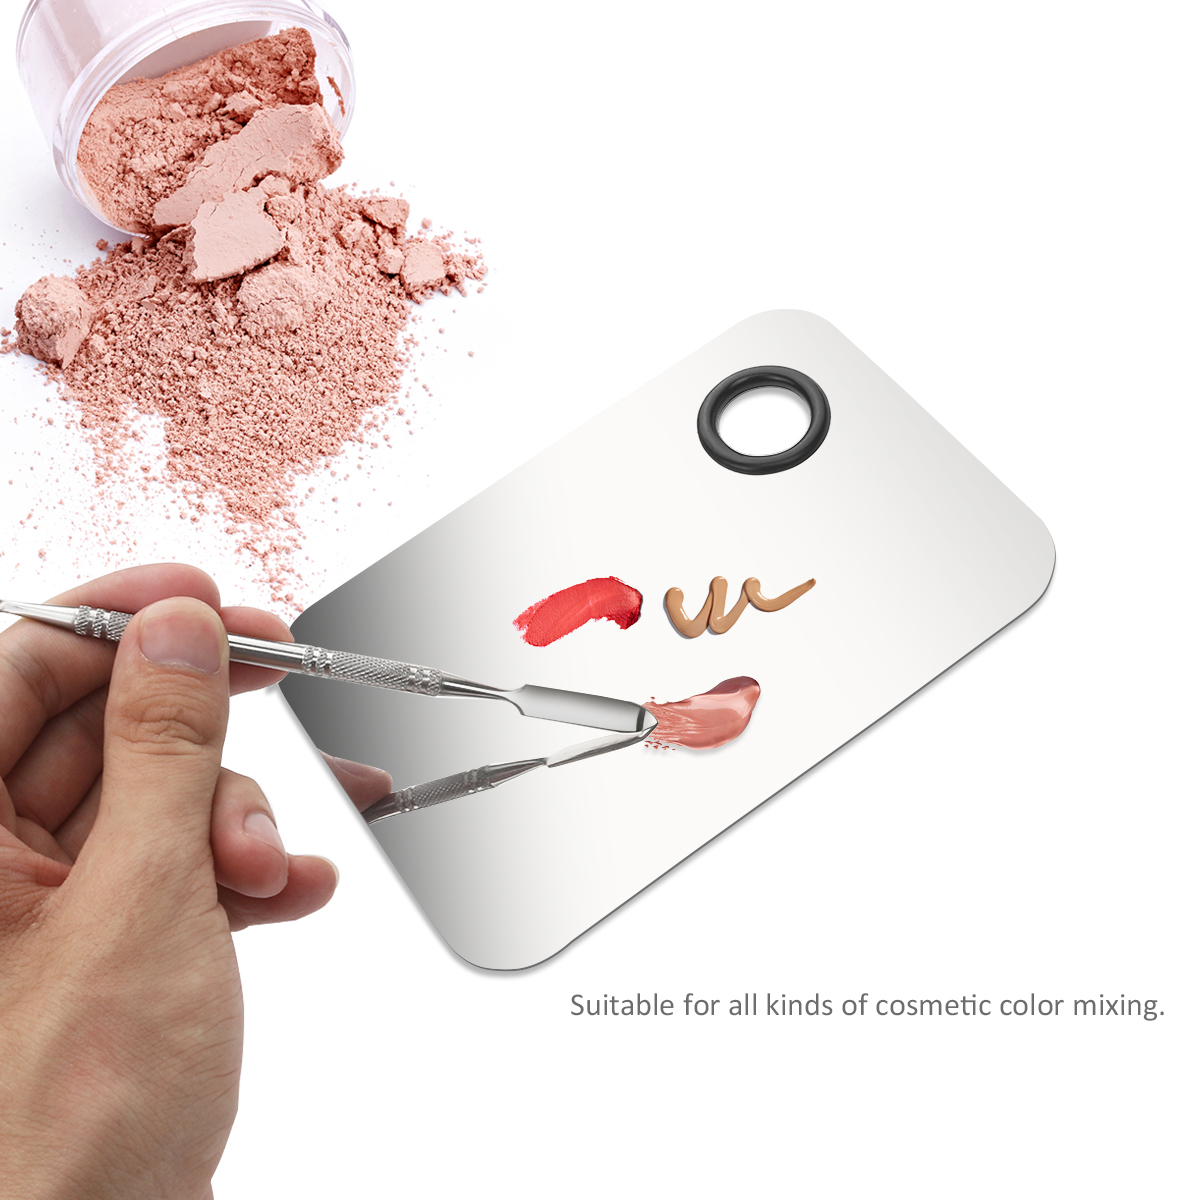 Online color mixer tool - 15 10cm Lady Stainless Steel Cosmetic Makeup Palette For Color Mixing Spatula Tool China